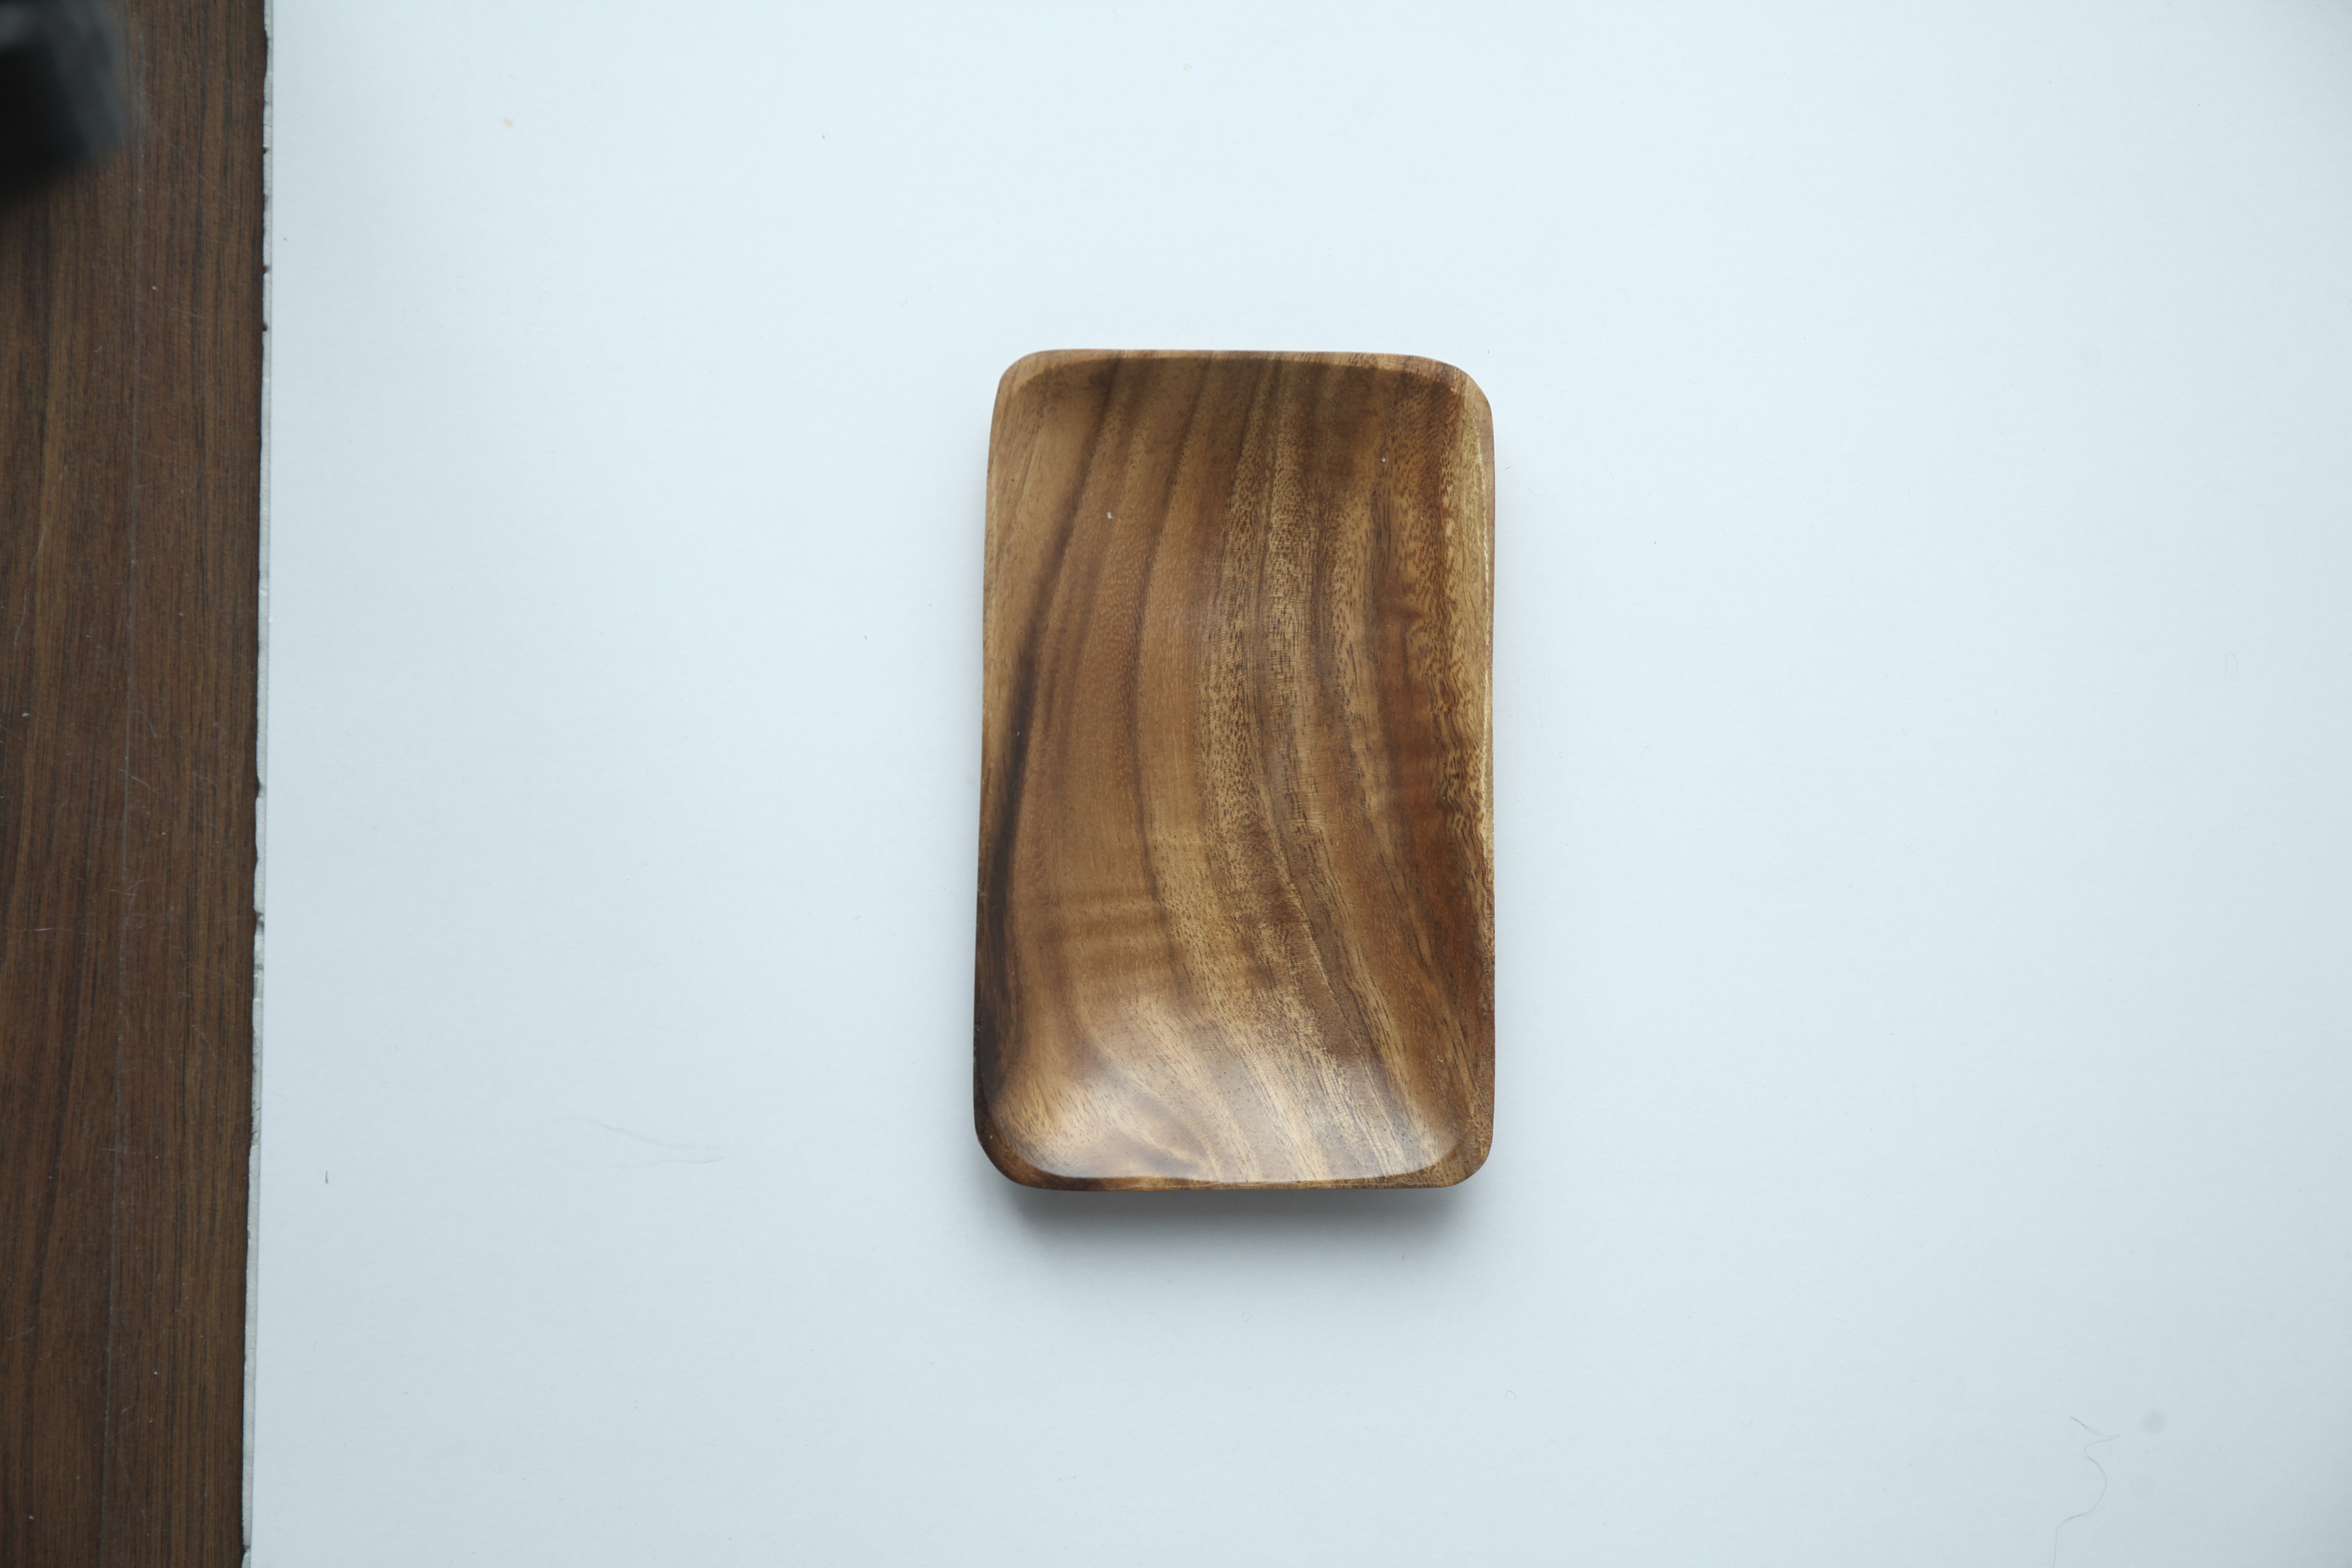 Japanese wooden tray